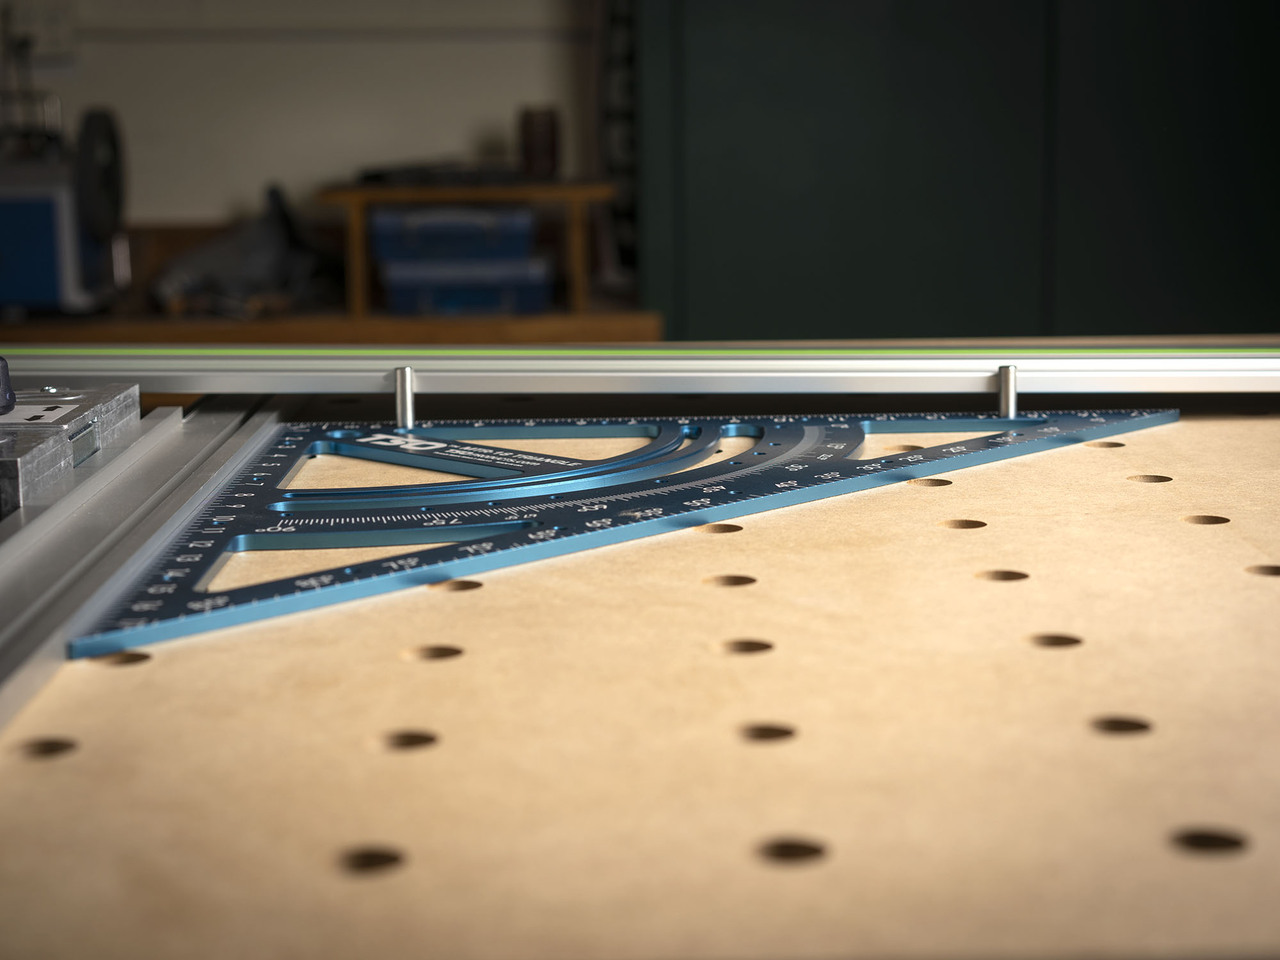 Here you can see the Squaring Pins protruding from the face of the MTR-18 and contacting the MFT/3 guide rail.